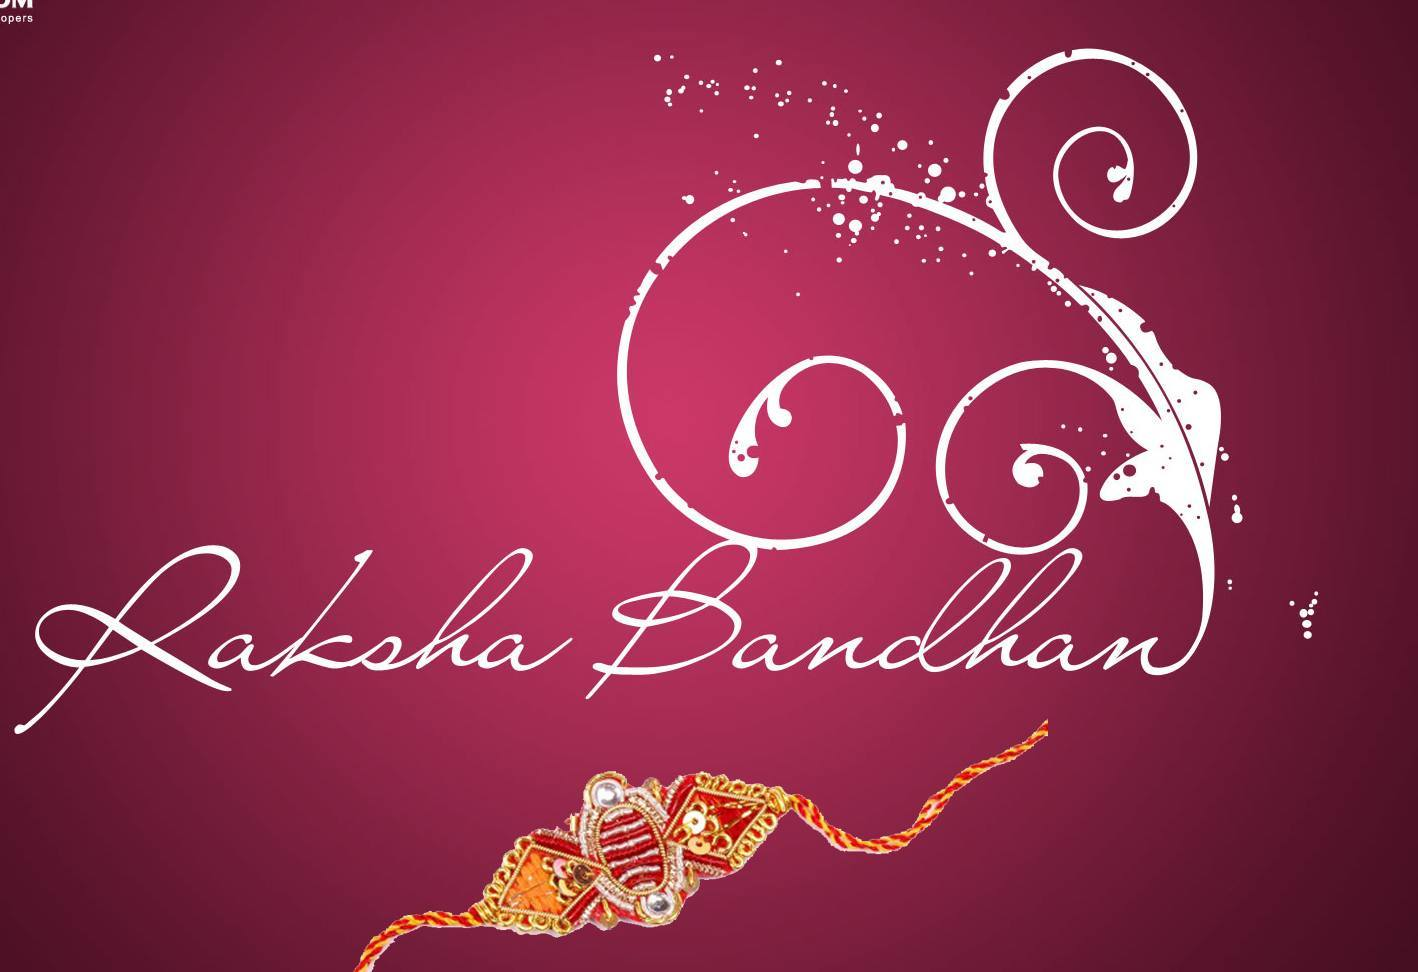 best raksha bandhan 2016 images hd hd photos raksha bandhan hd picture